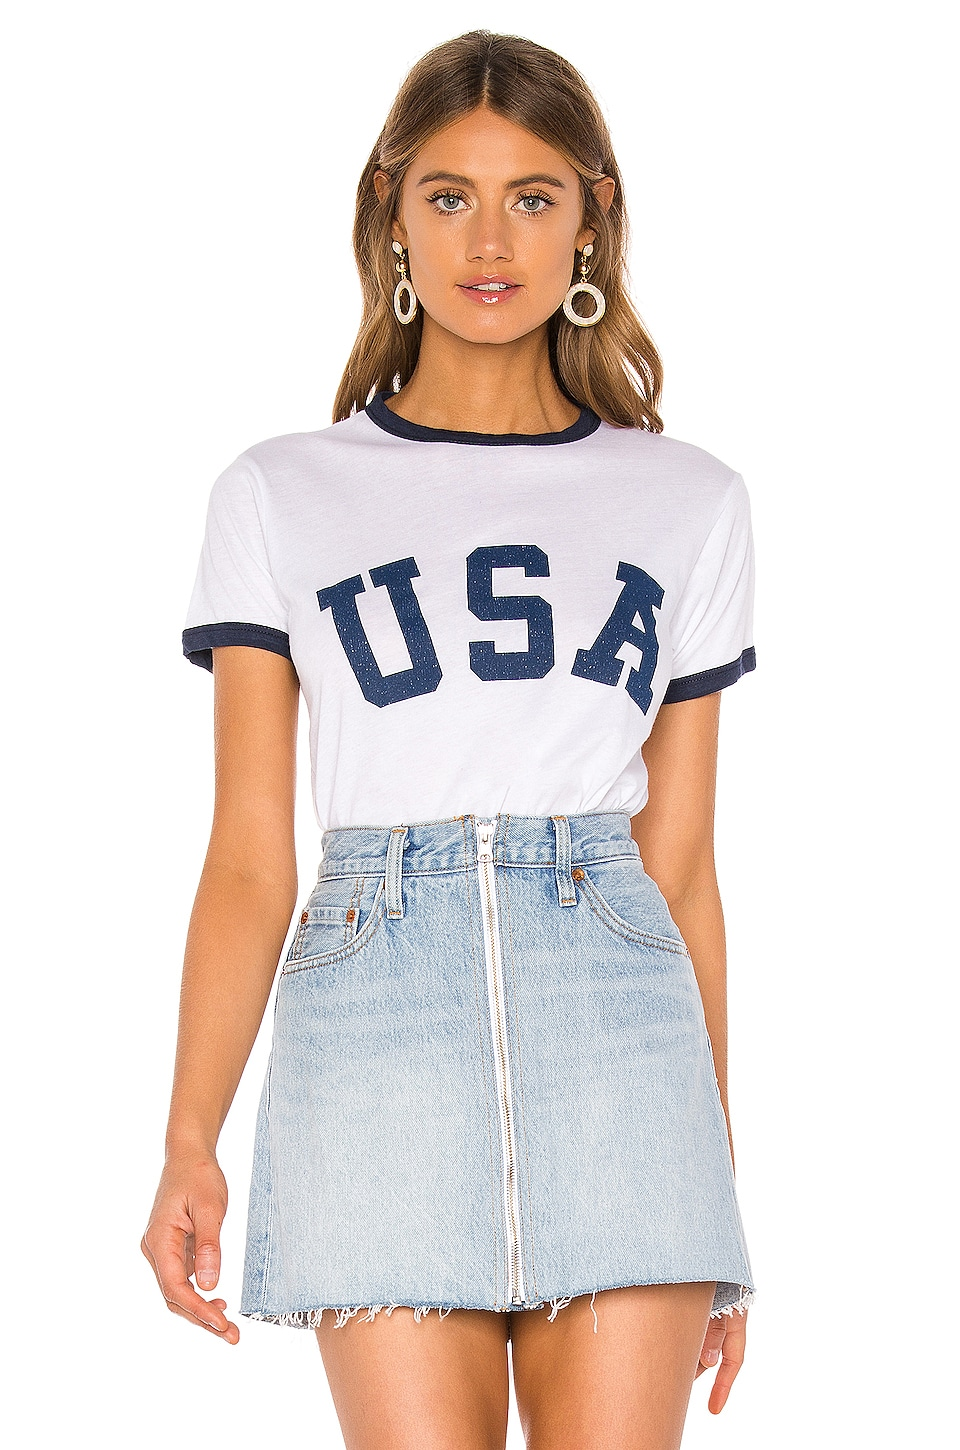 Show Me Your Mumu Recess Ringer Tee in USA Graphic